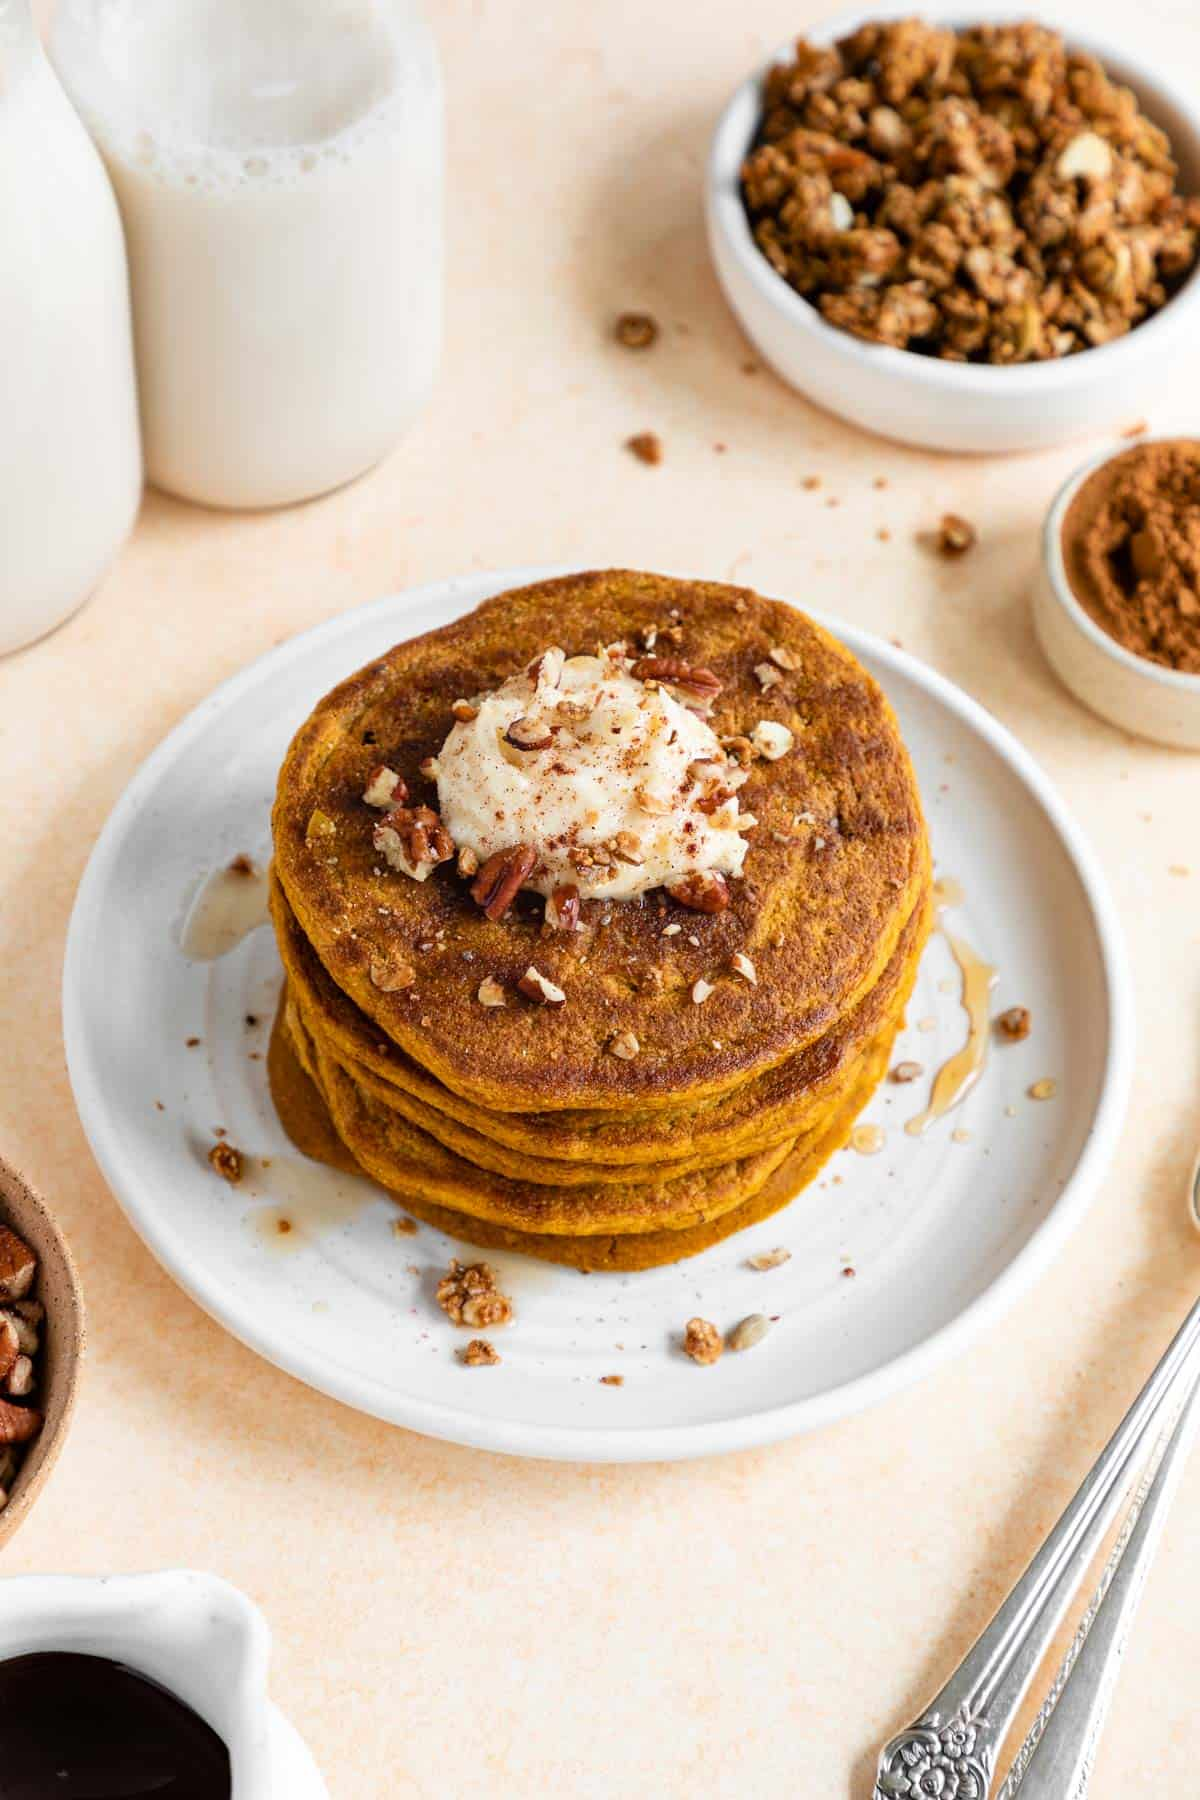 vegan pumpkin pancakes on a plate with whipped cream, maple syrup, and pecans on top